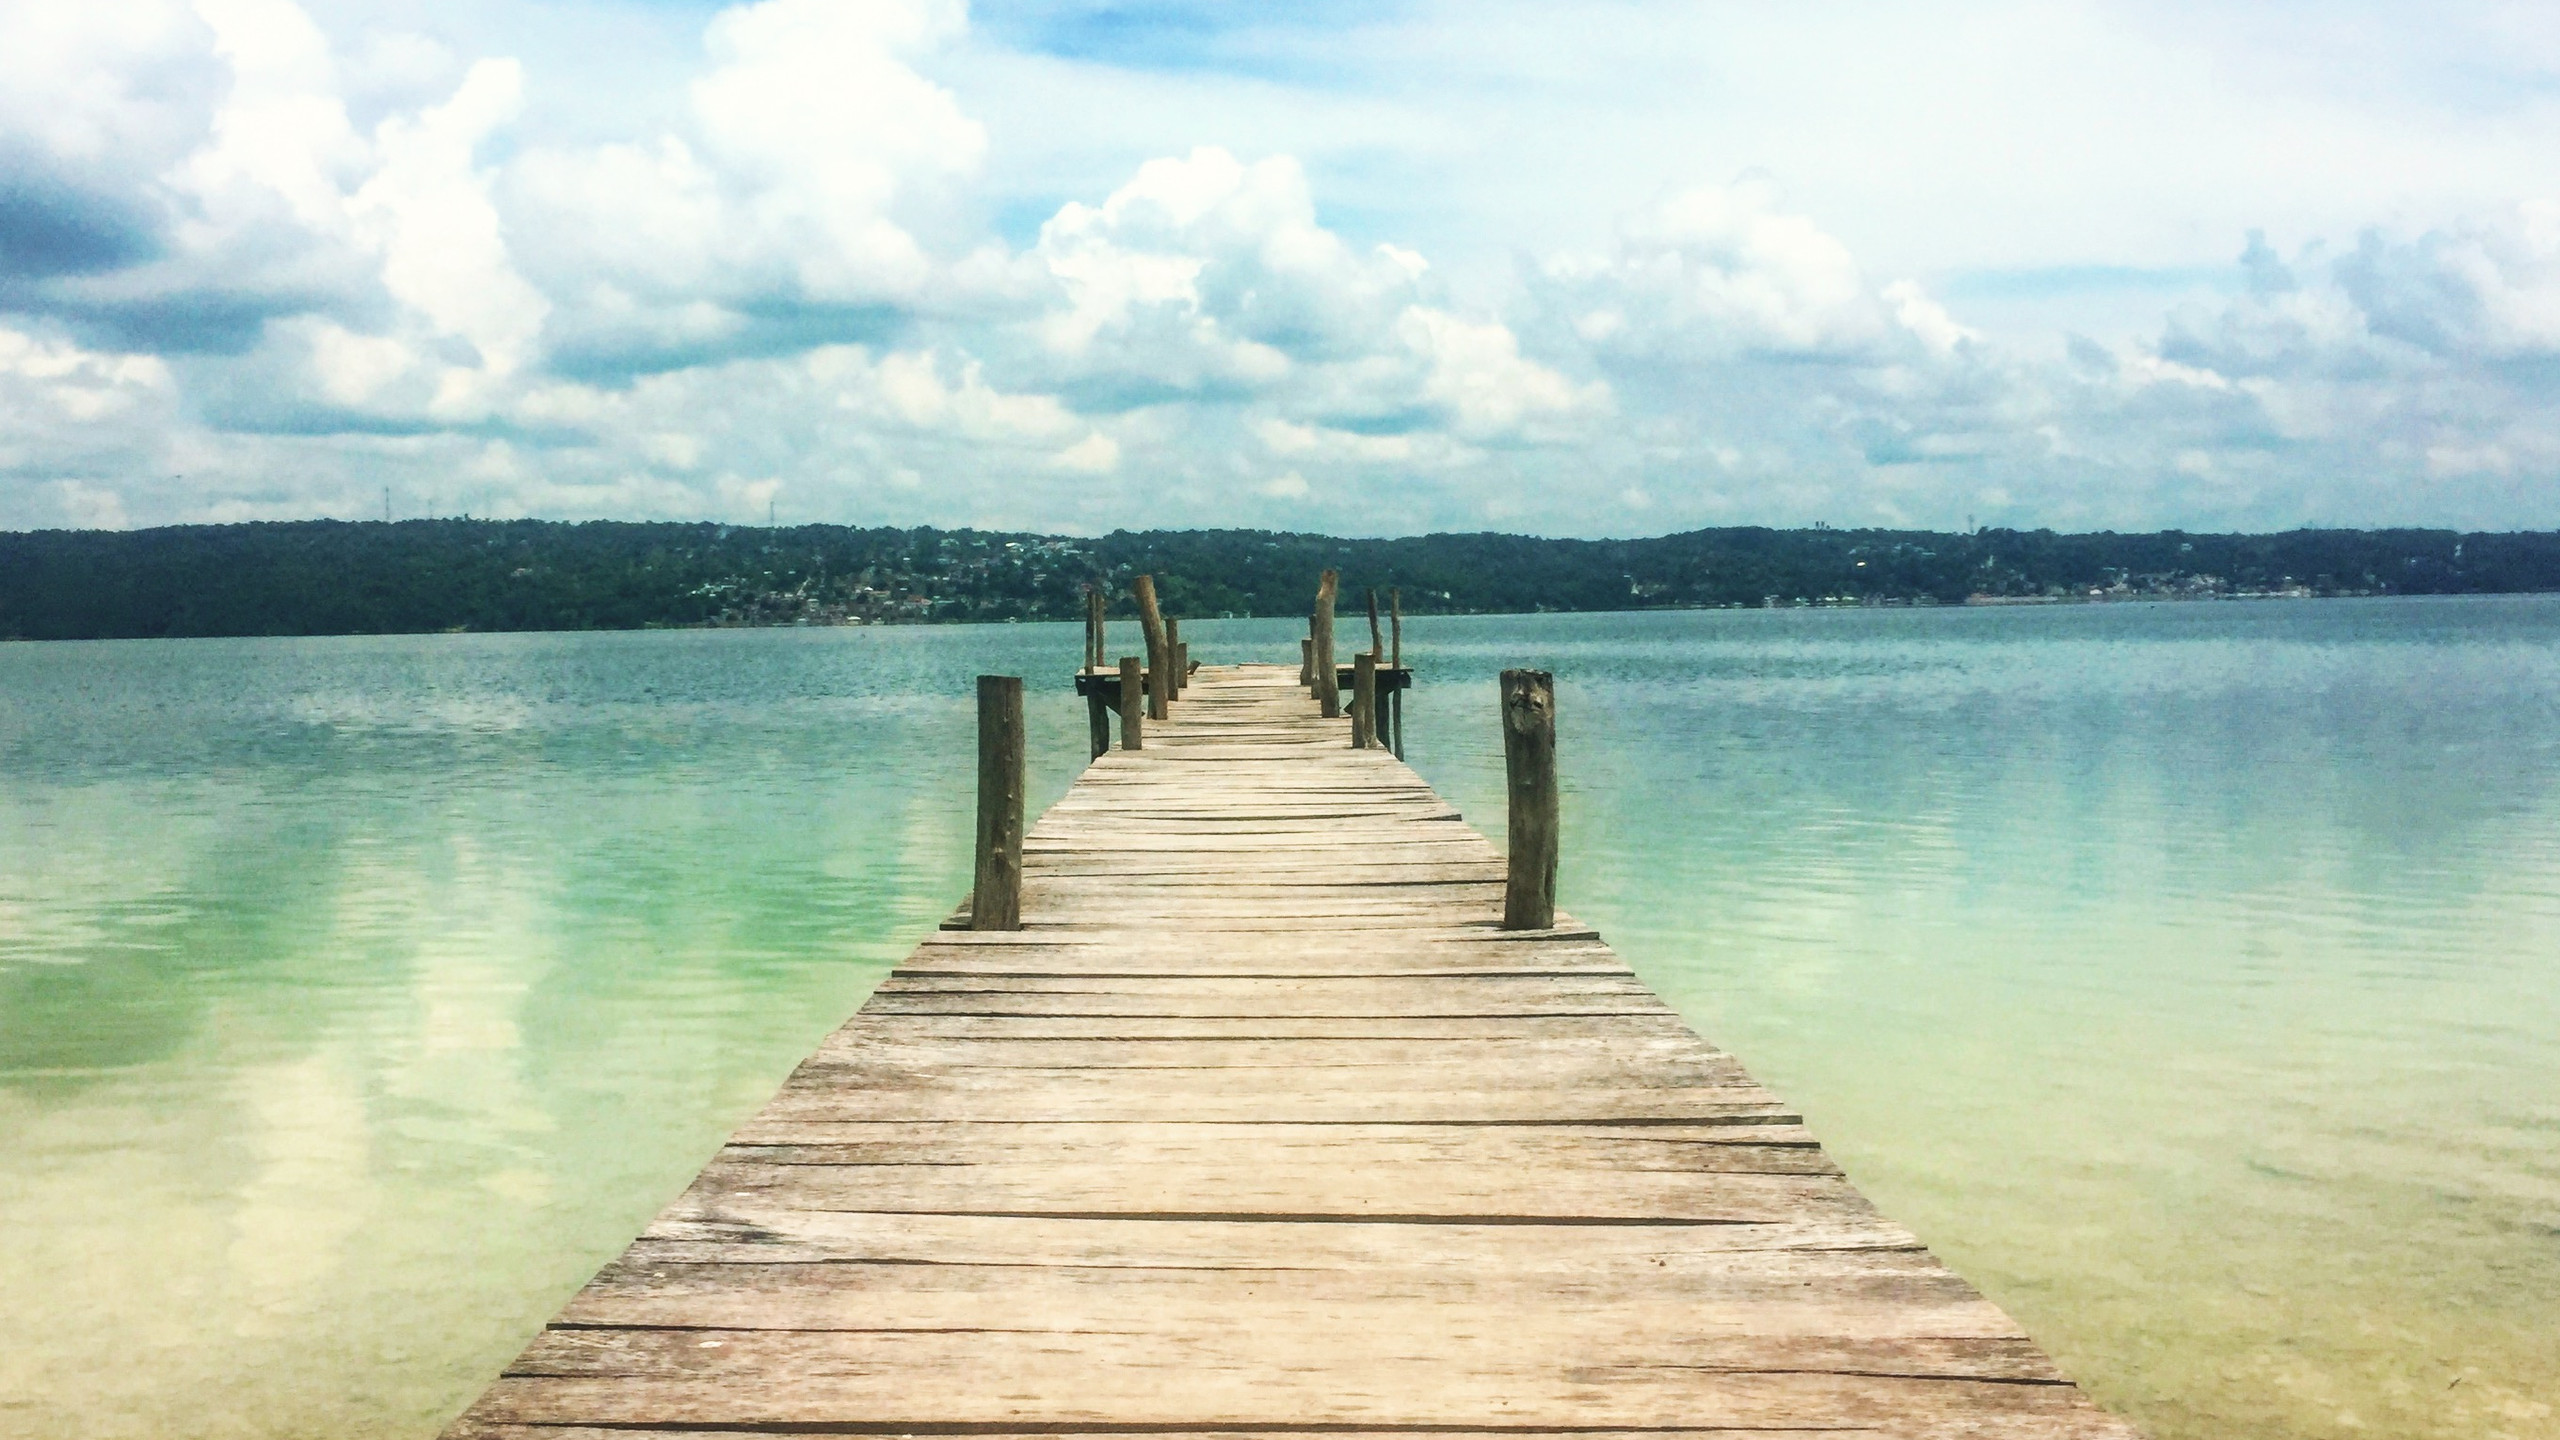 Dock at the beach